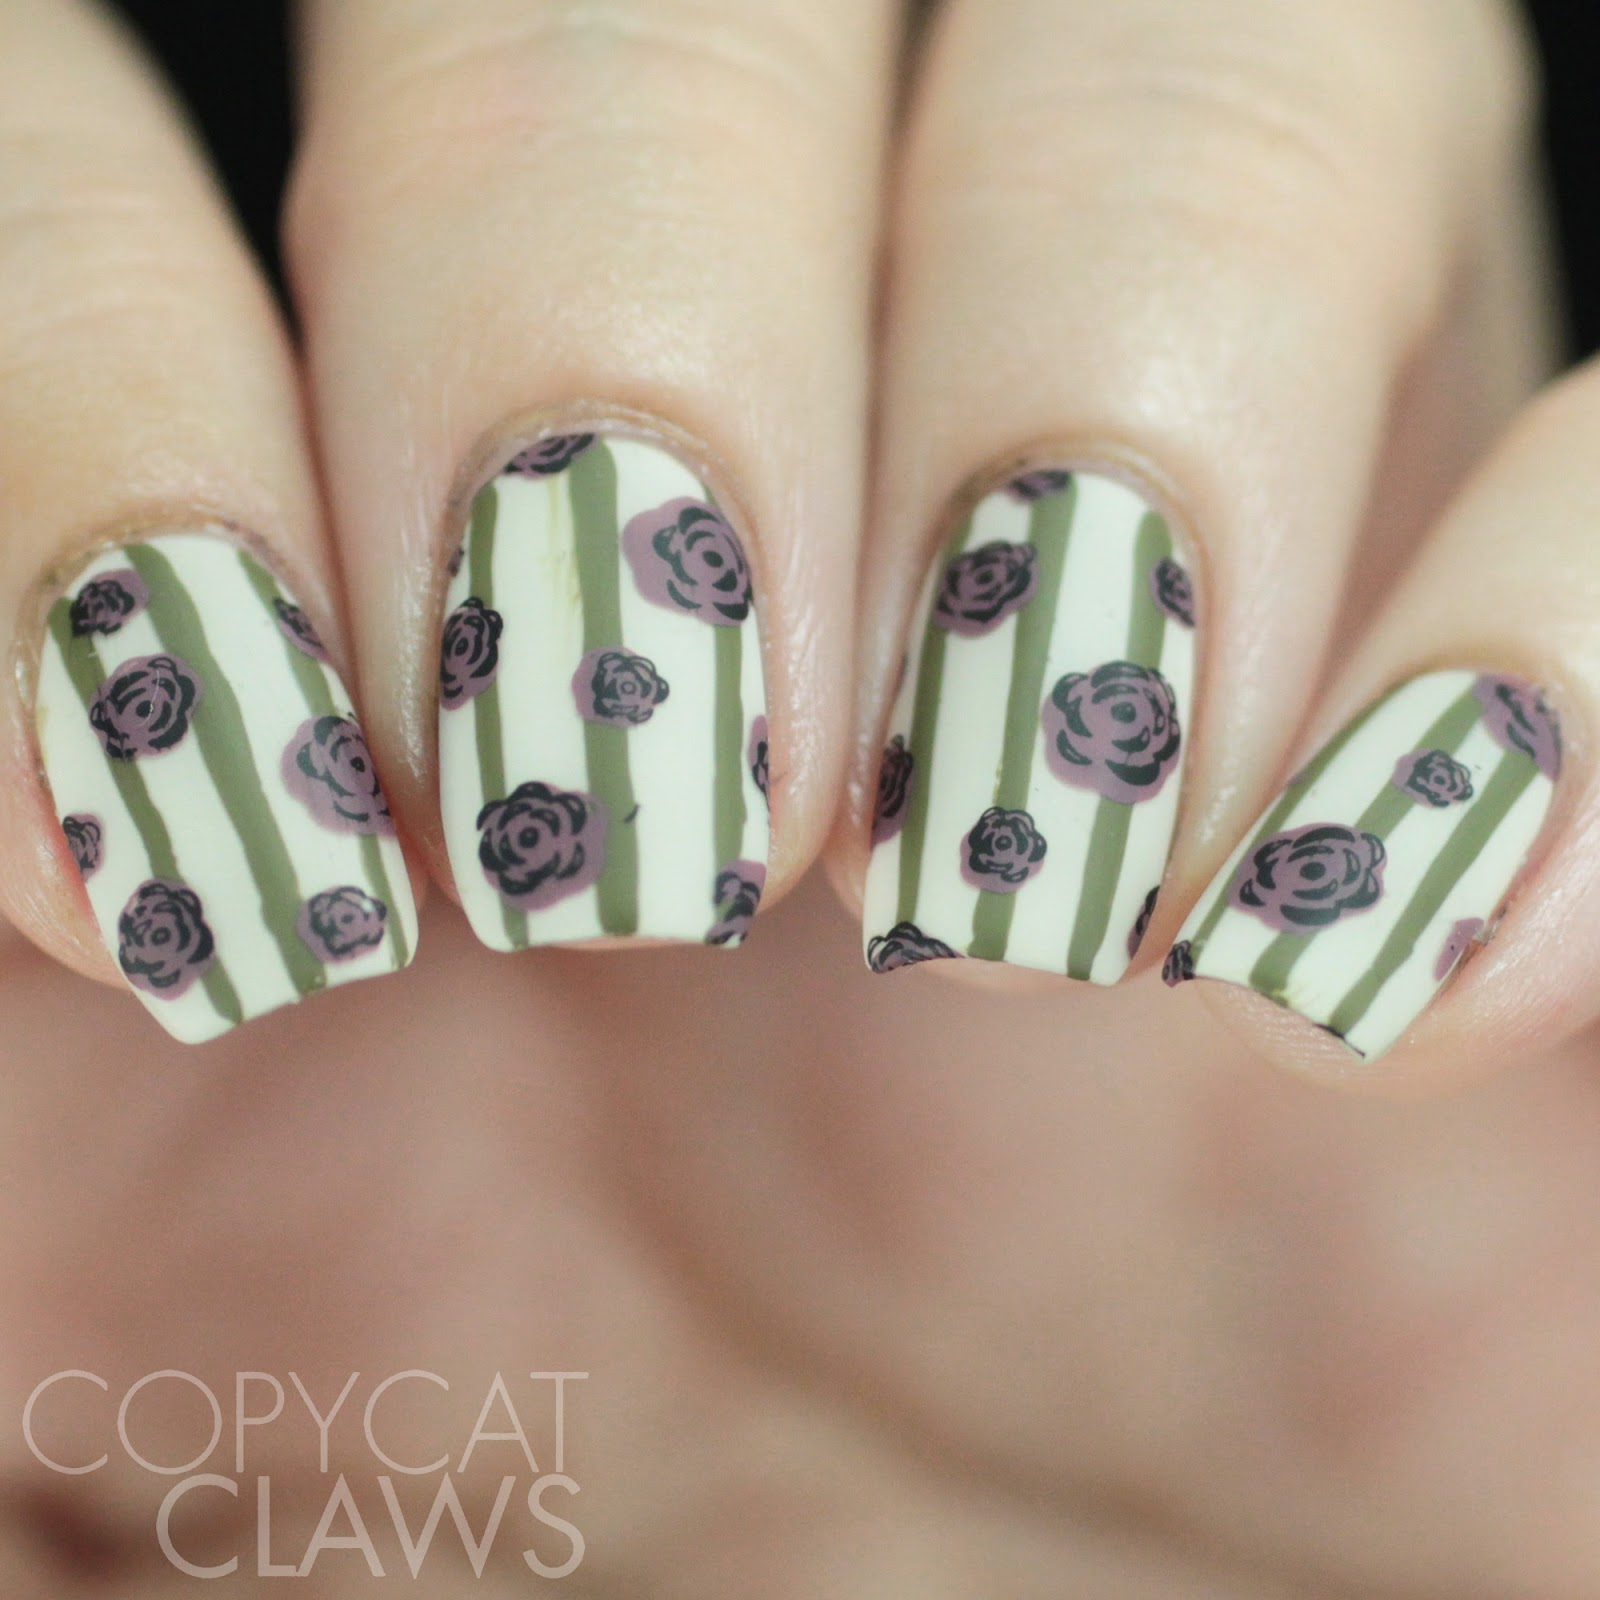 Copycat Claws 26 Great Nail Art Ideas Pattern On Pattern With